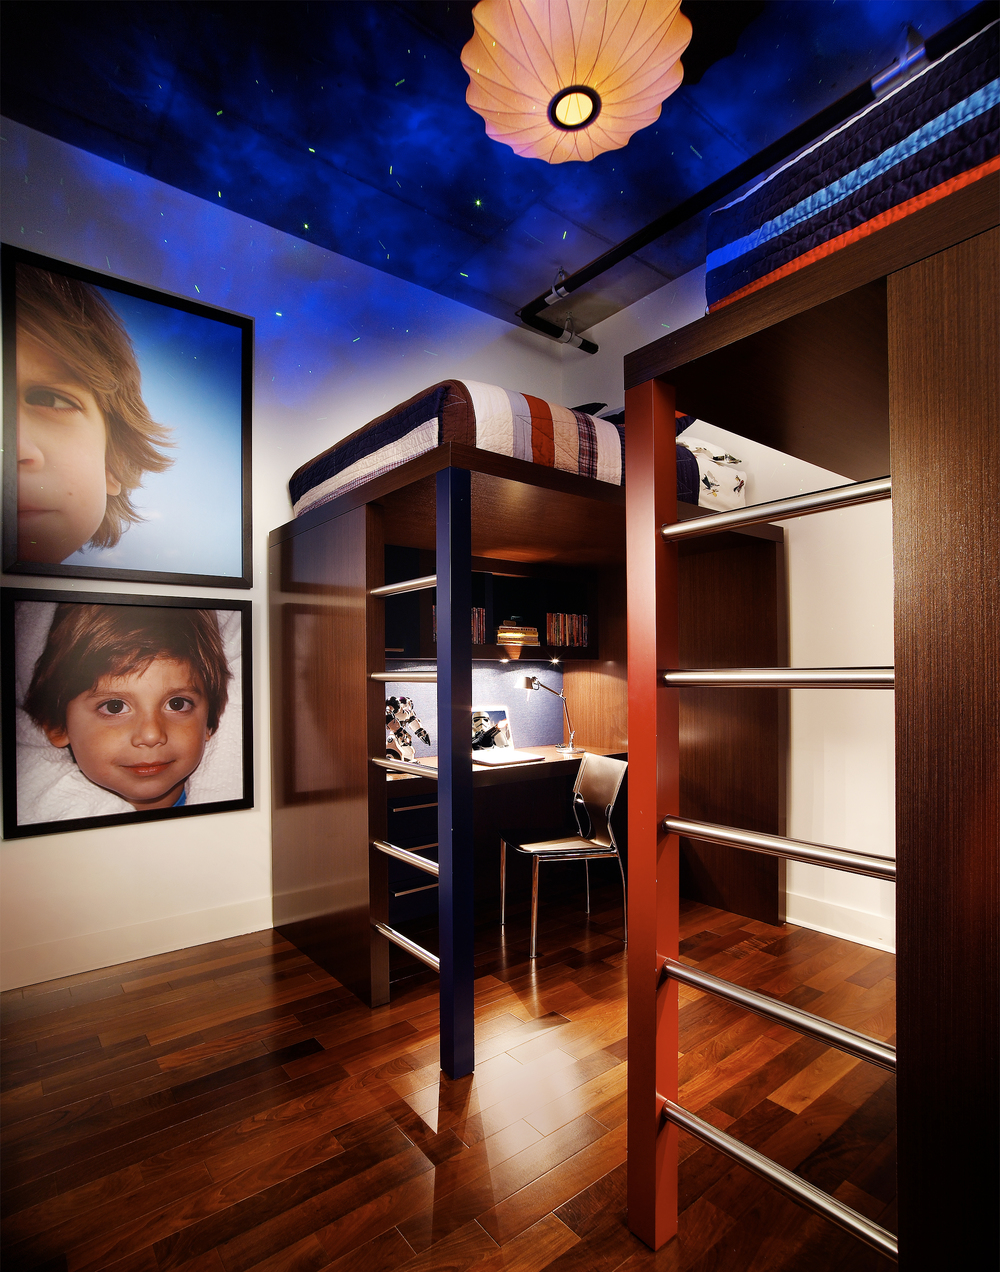 Loor-kids-room.jpg